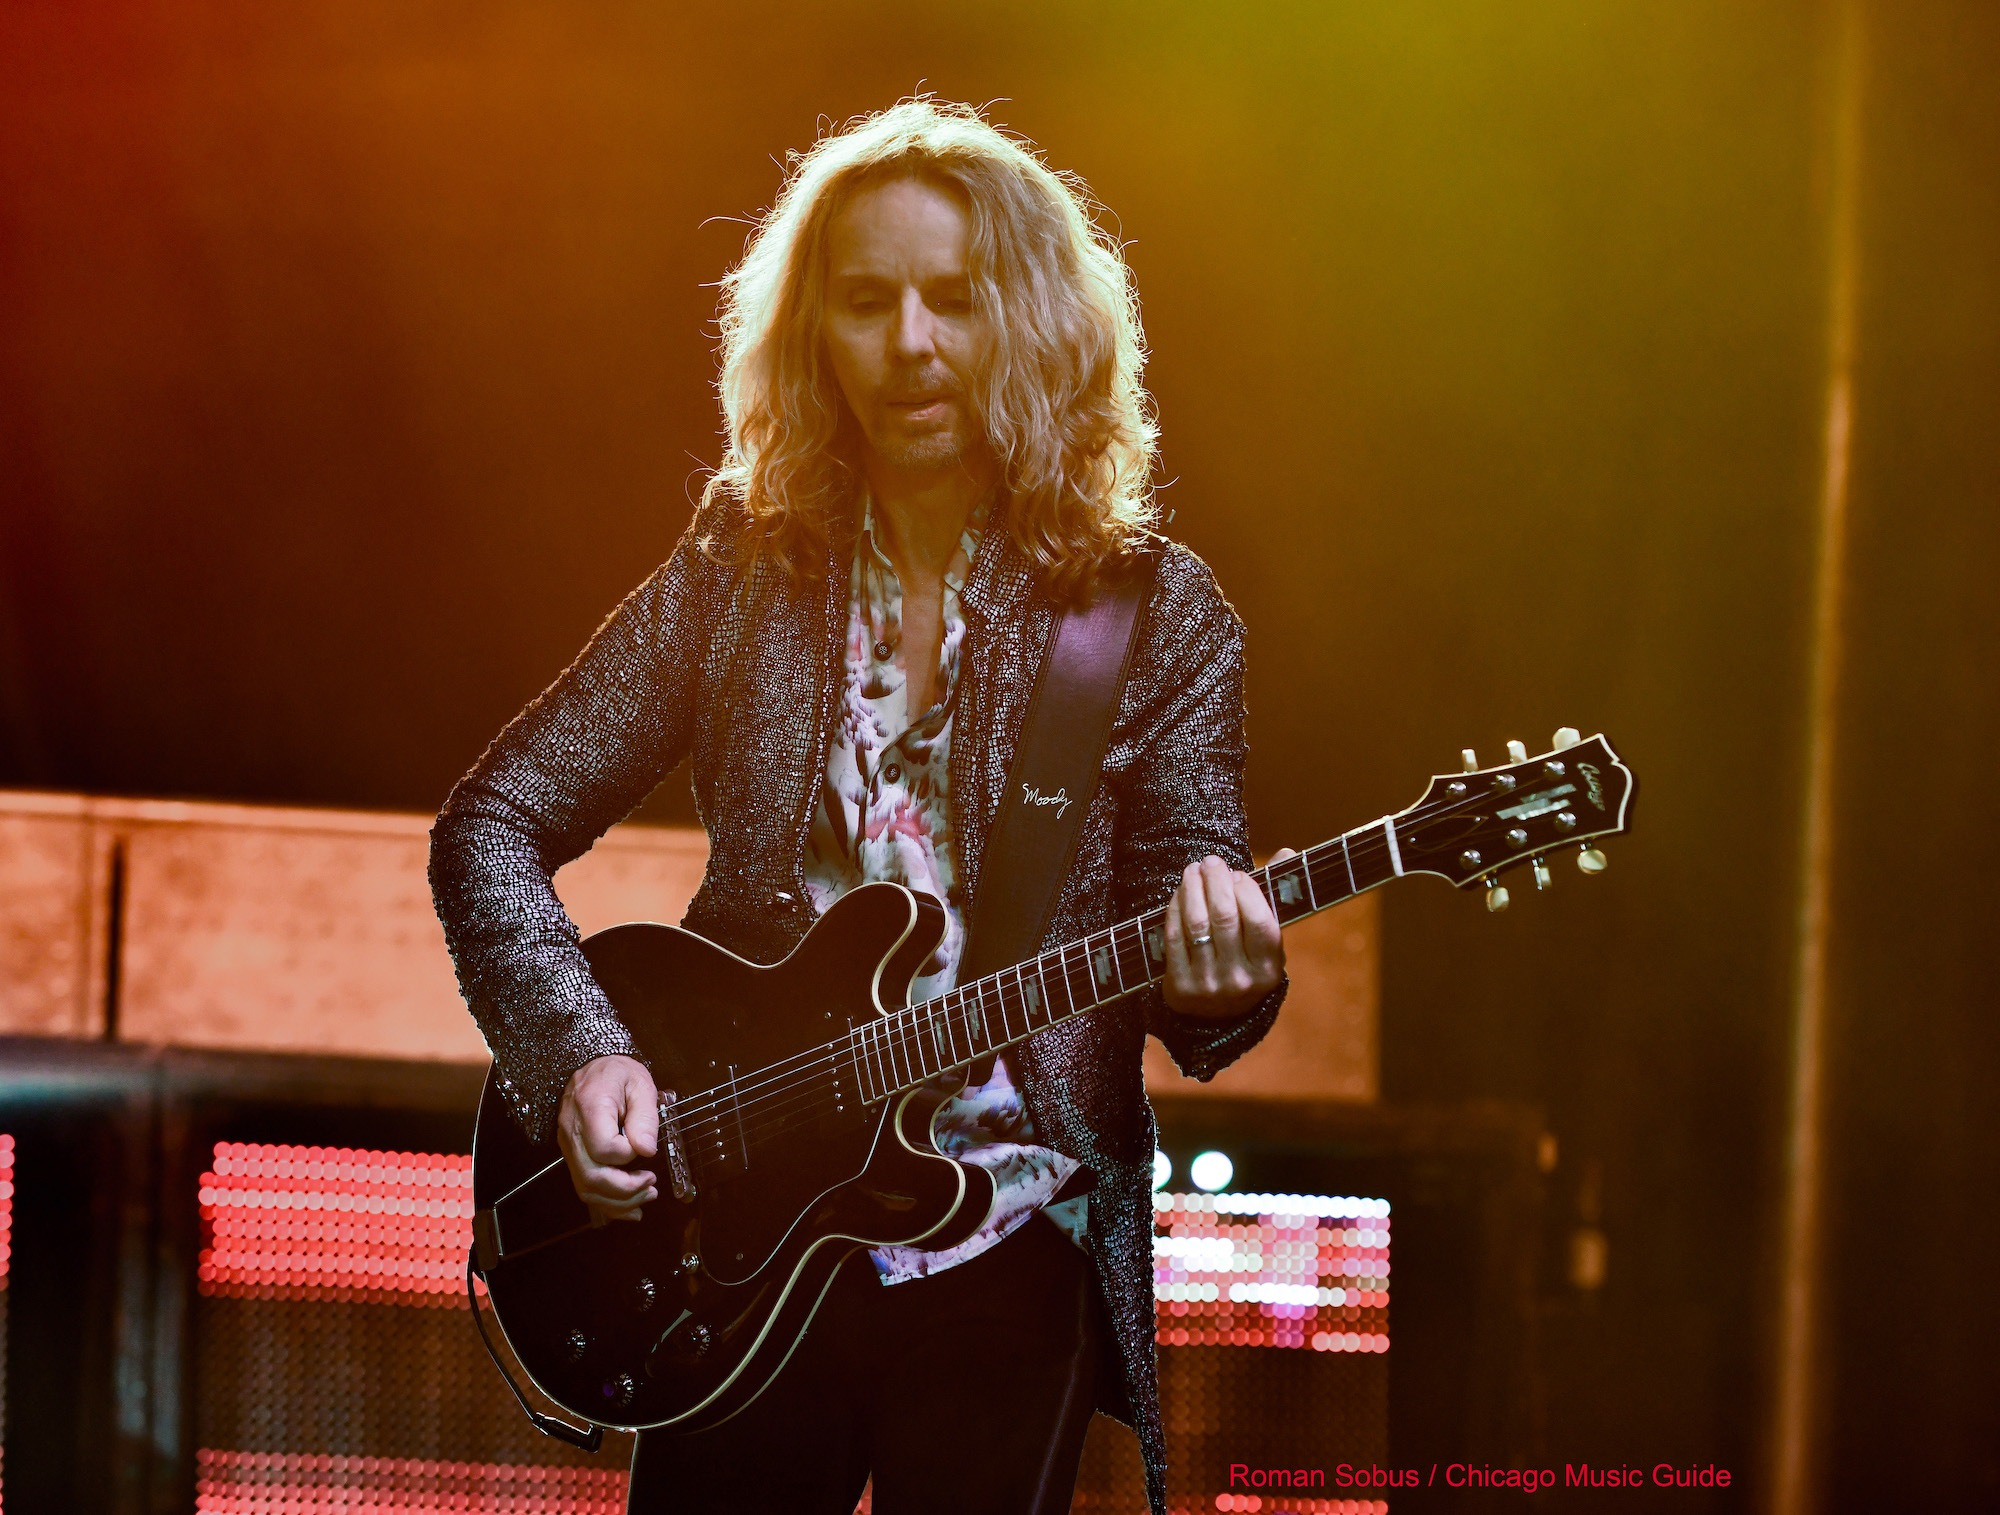 STYX Live at McHenry County Fairgrounds [GALLERY] 8